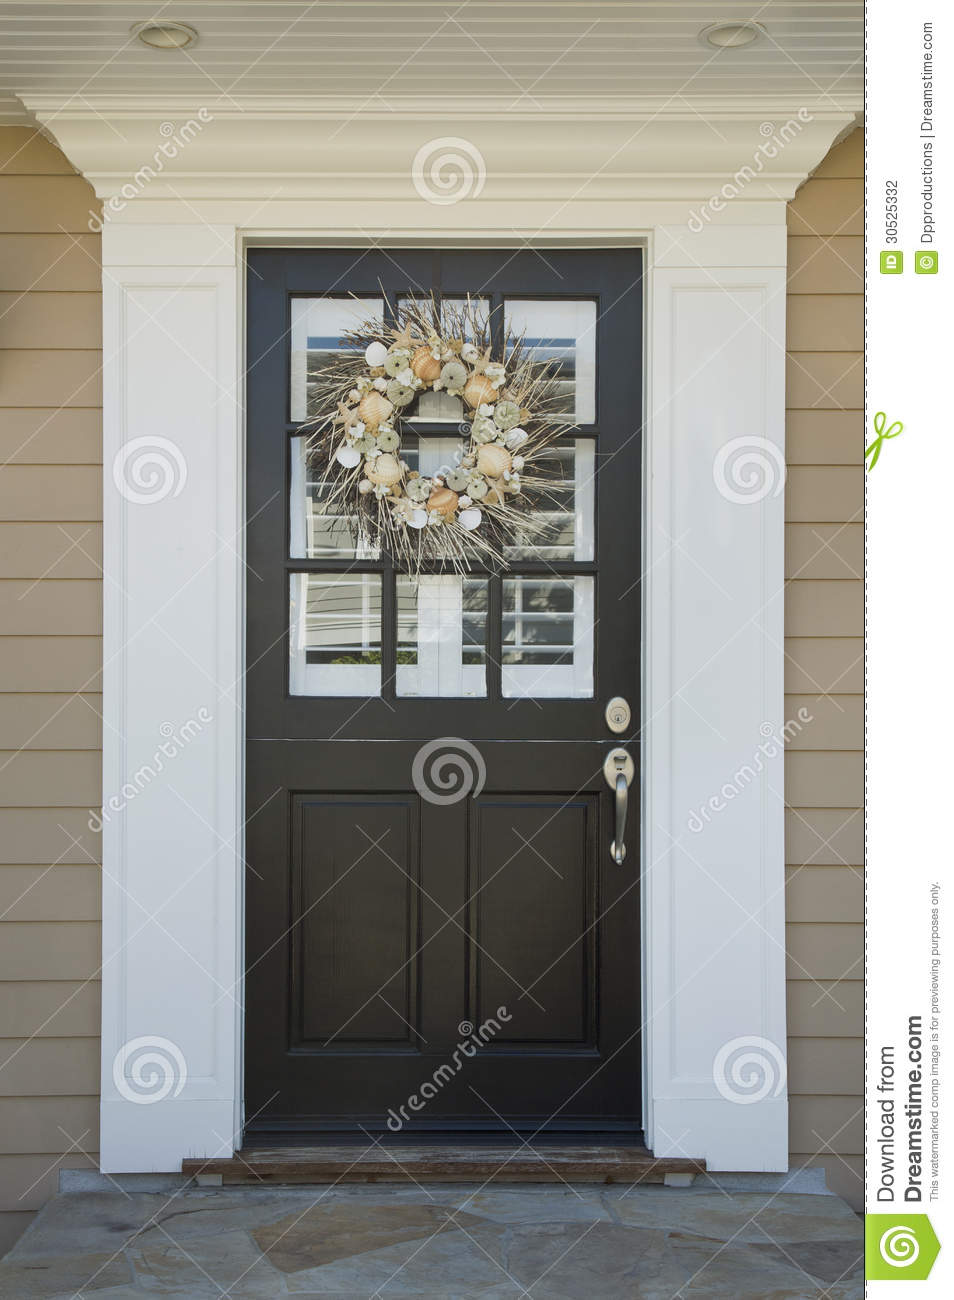 Front Door Of An Upscale Home Stock Photo Image 30525332